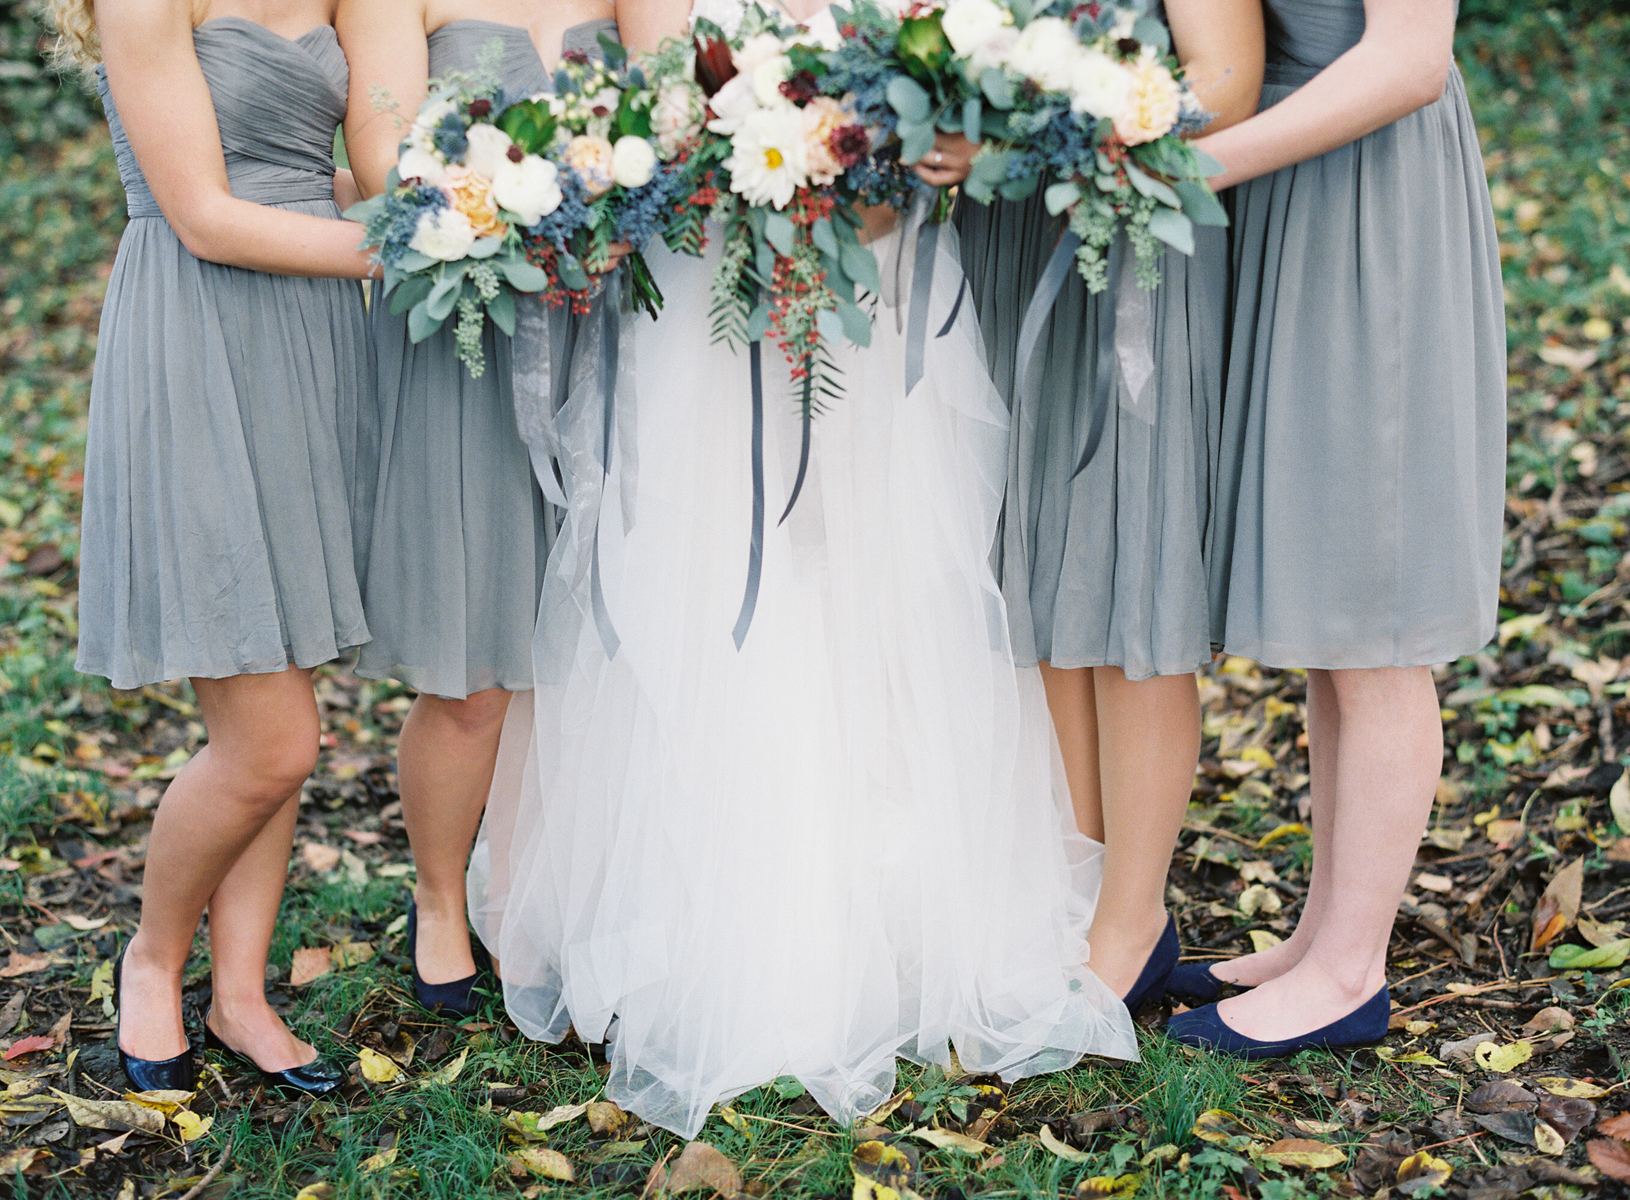 Grey bridesmaids dresses, bouquets with pops of peach, burgundy, and navy // Nashville Wedding Florist